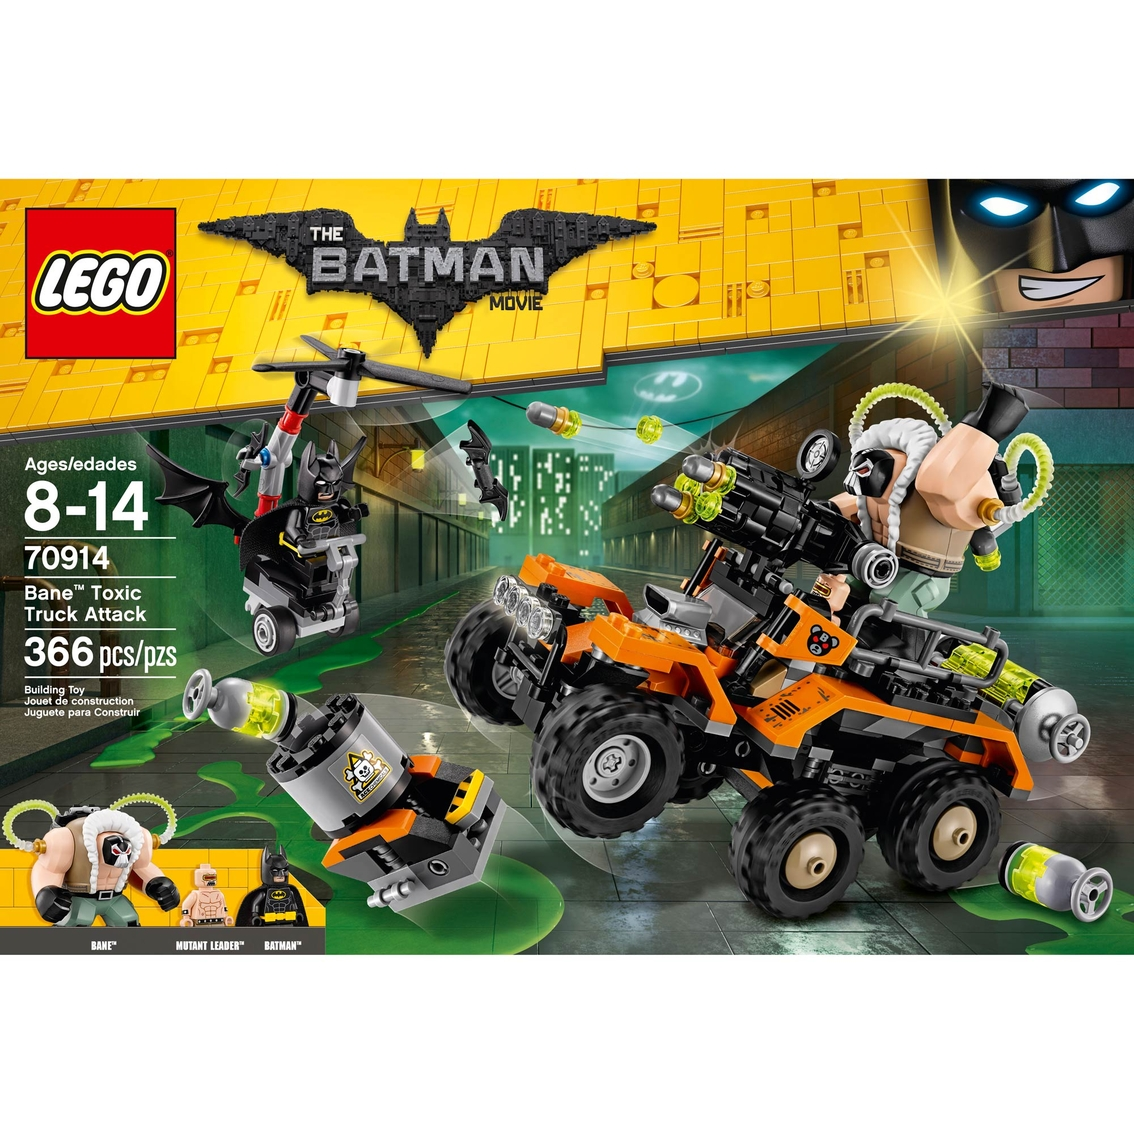 Lego The Batman Movie Bane Toxic Truck Attack Building Toys Baby Toys Shop The Exchange